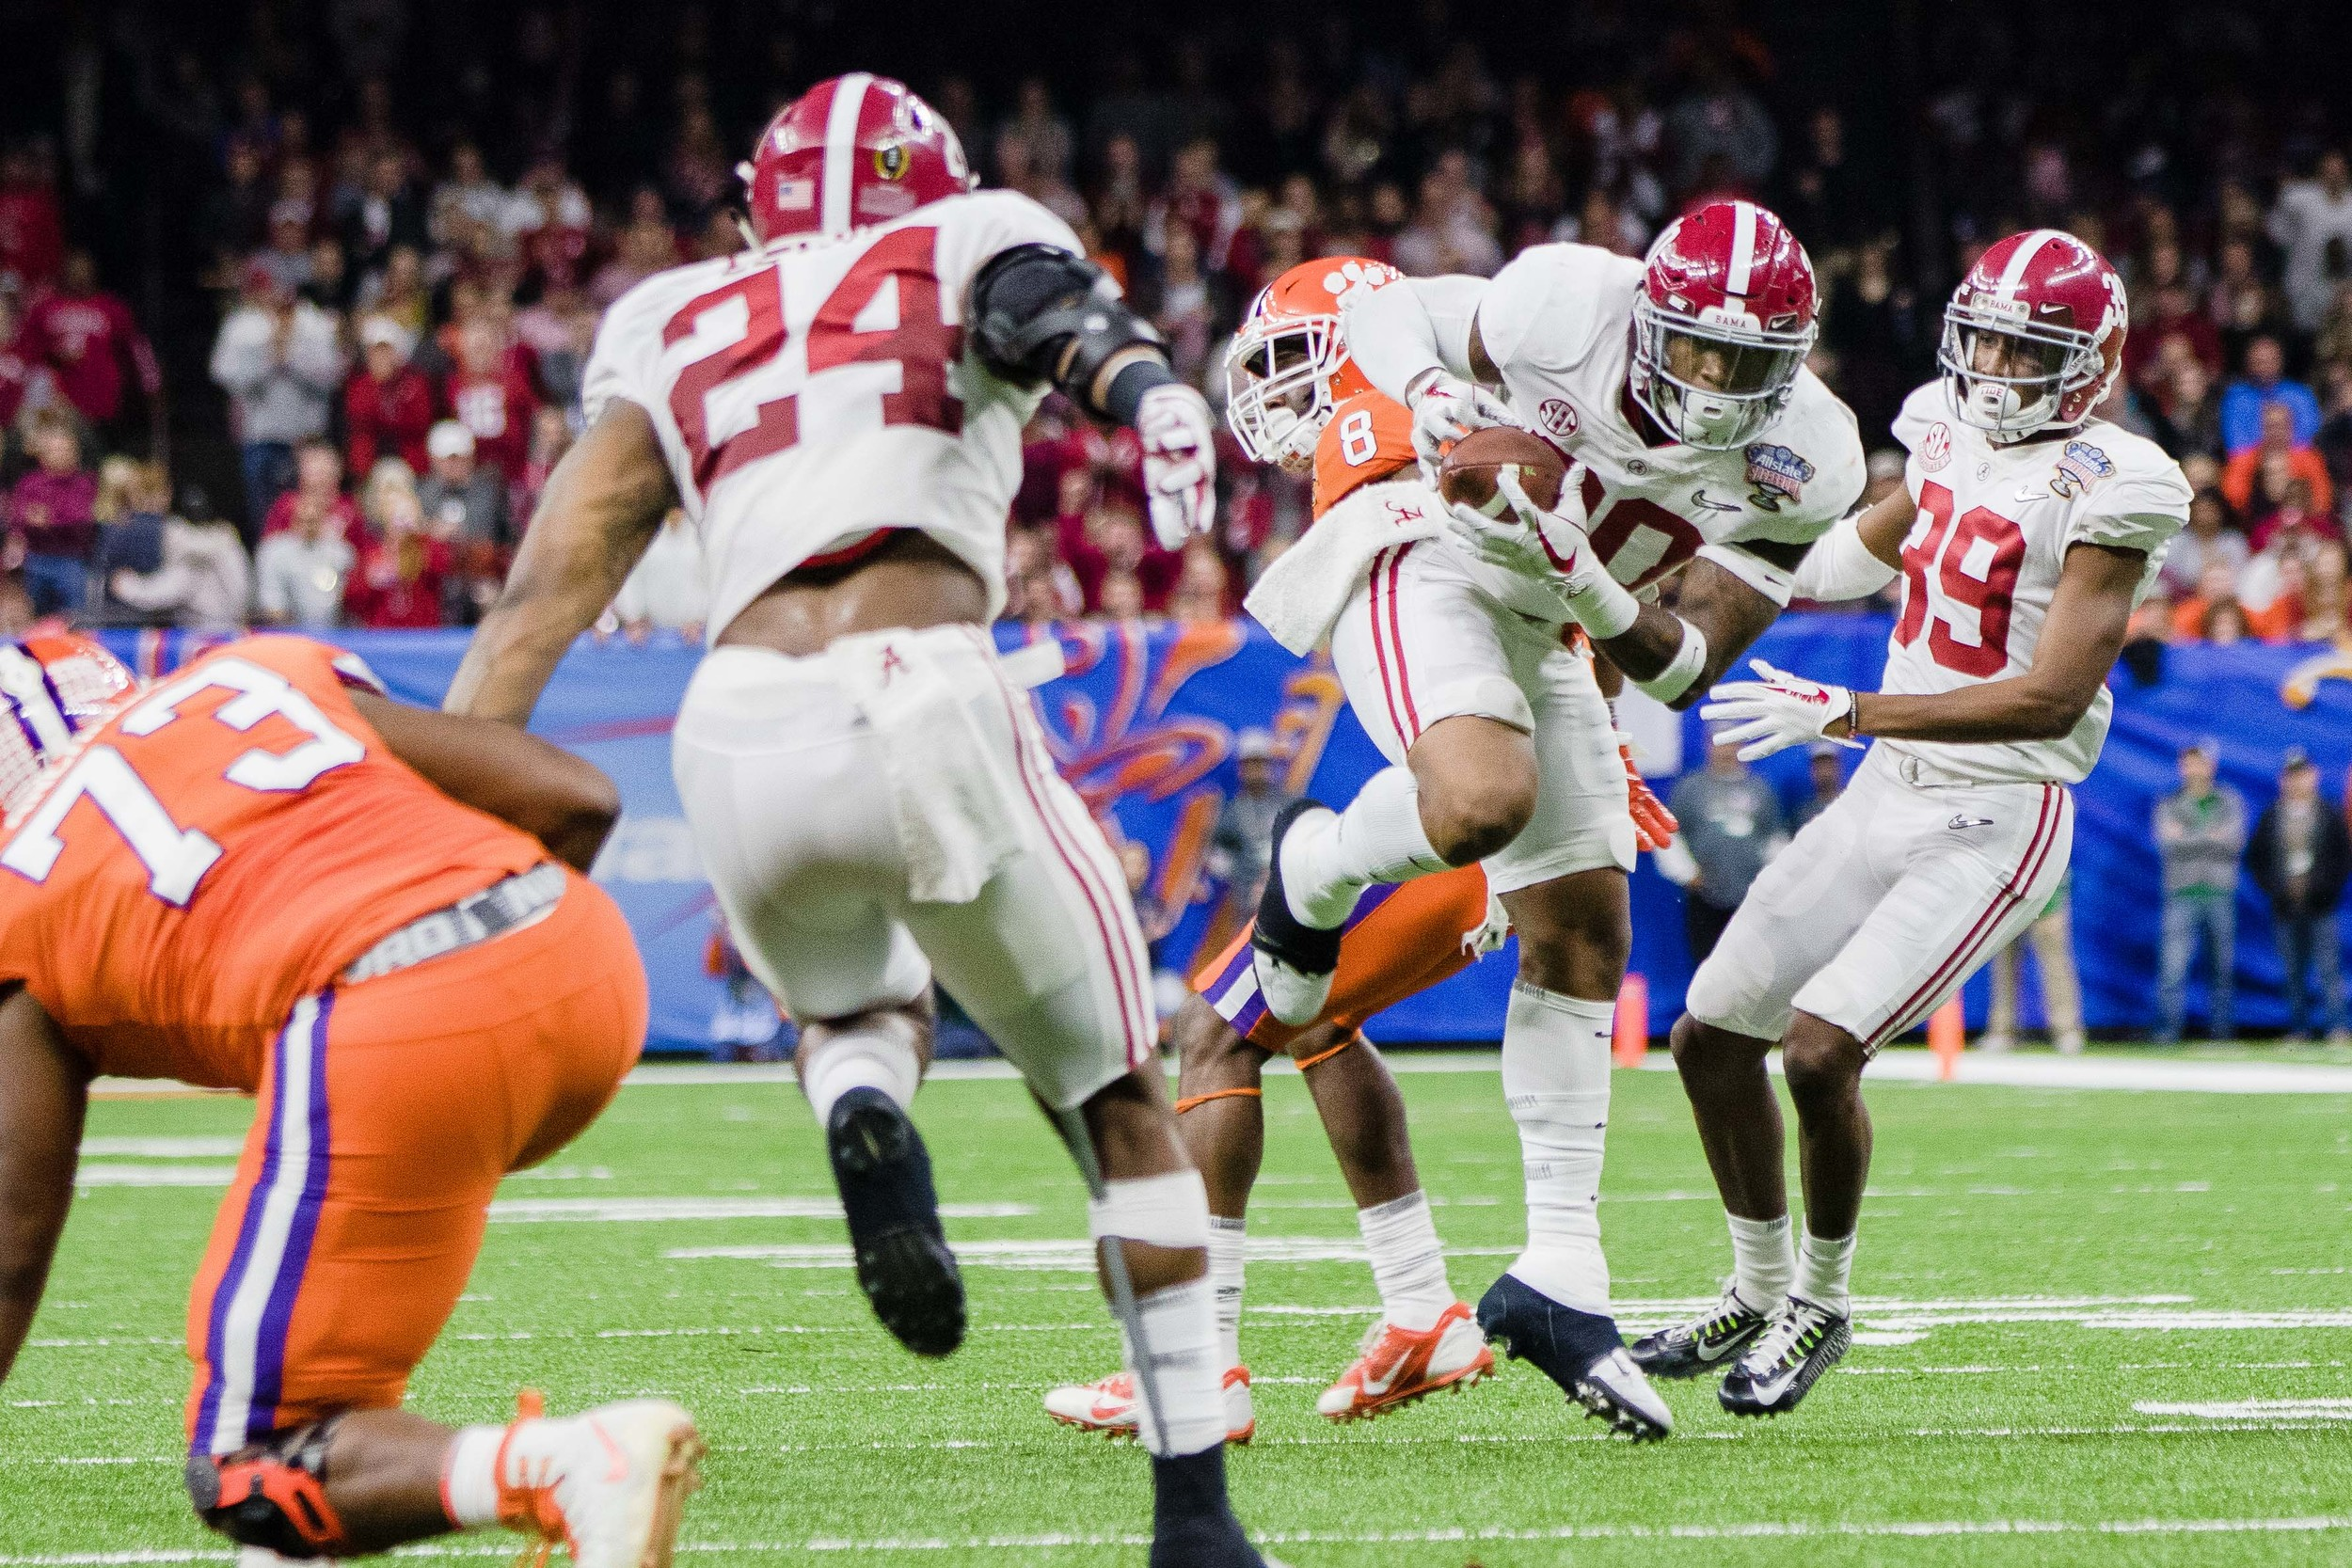 Linebacker Mack Wilson lands an interception in the second half as Clemson begins to unravel.